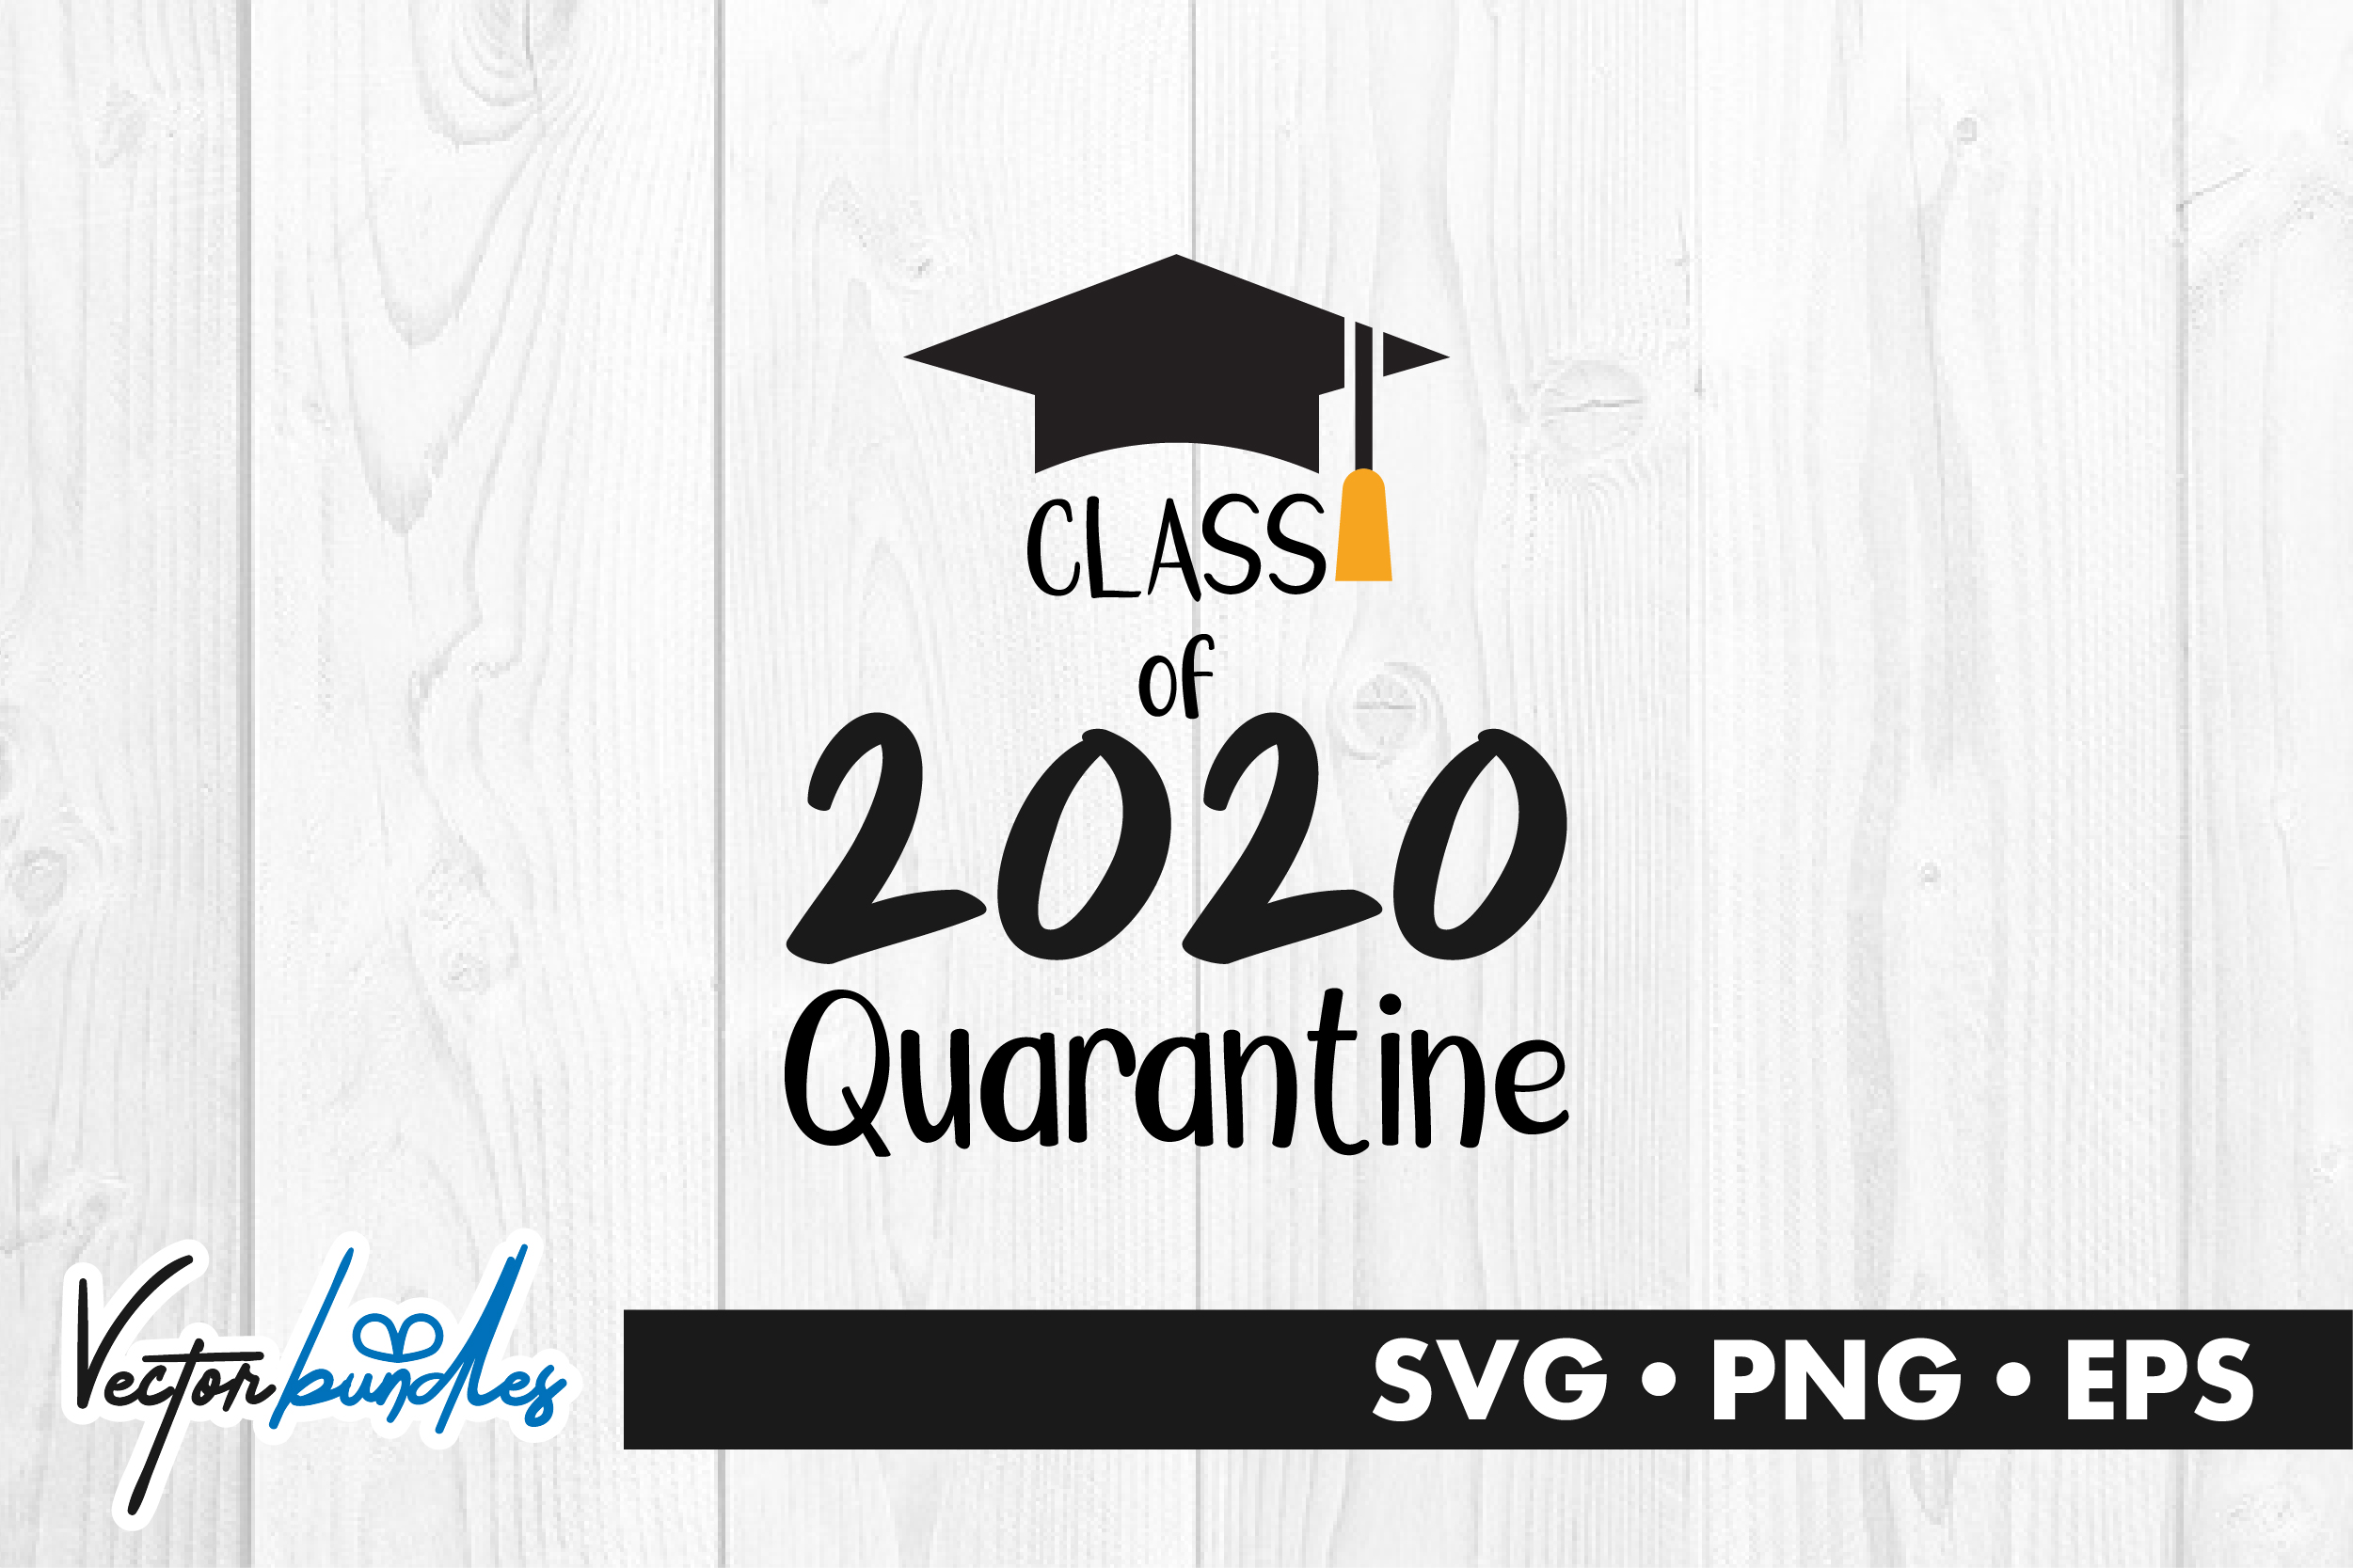 Download Free Class Of 2020 Quarantine Quote Graphic By Vectorbundles for Cricut Explore, Silhouette and other cutting machines.